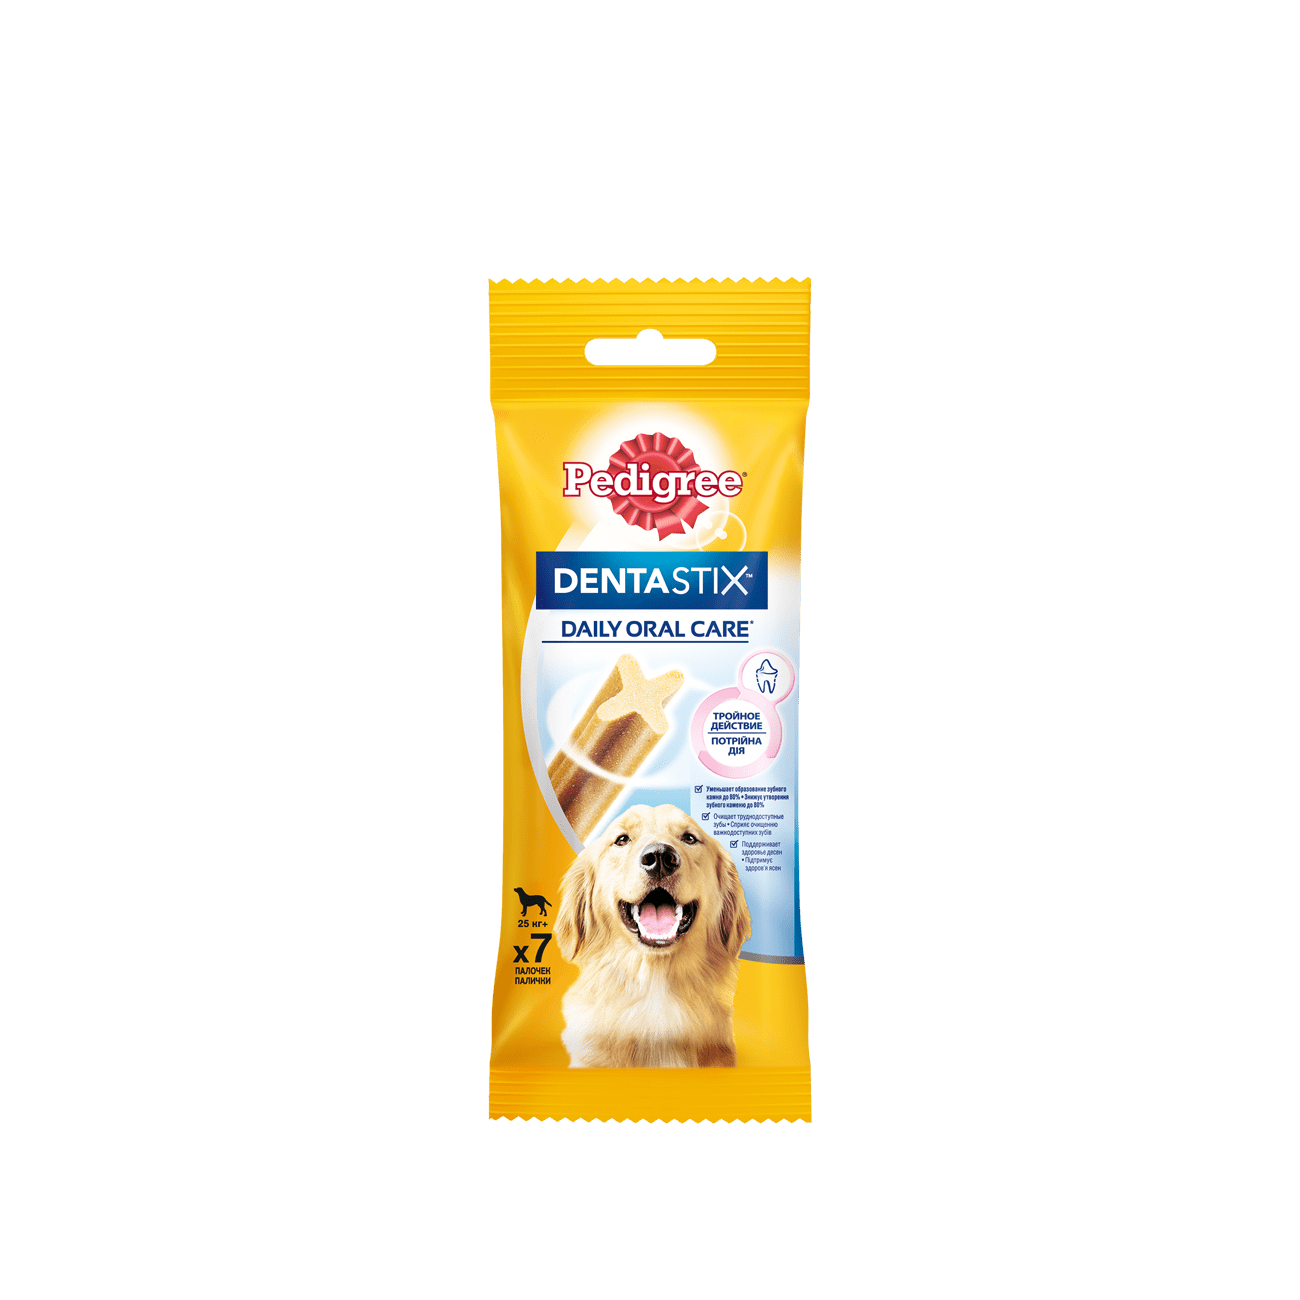 Pedigree DentaStix Лакомство для собак крупных пород более 25кг, 270г